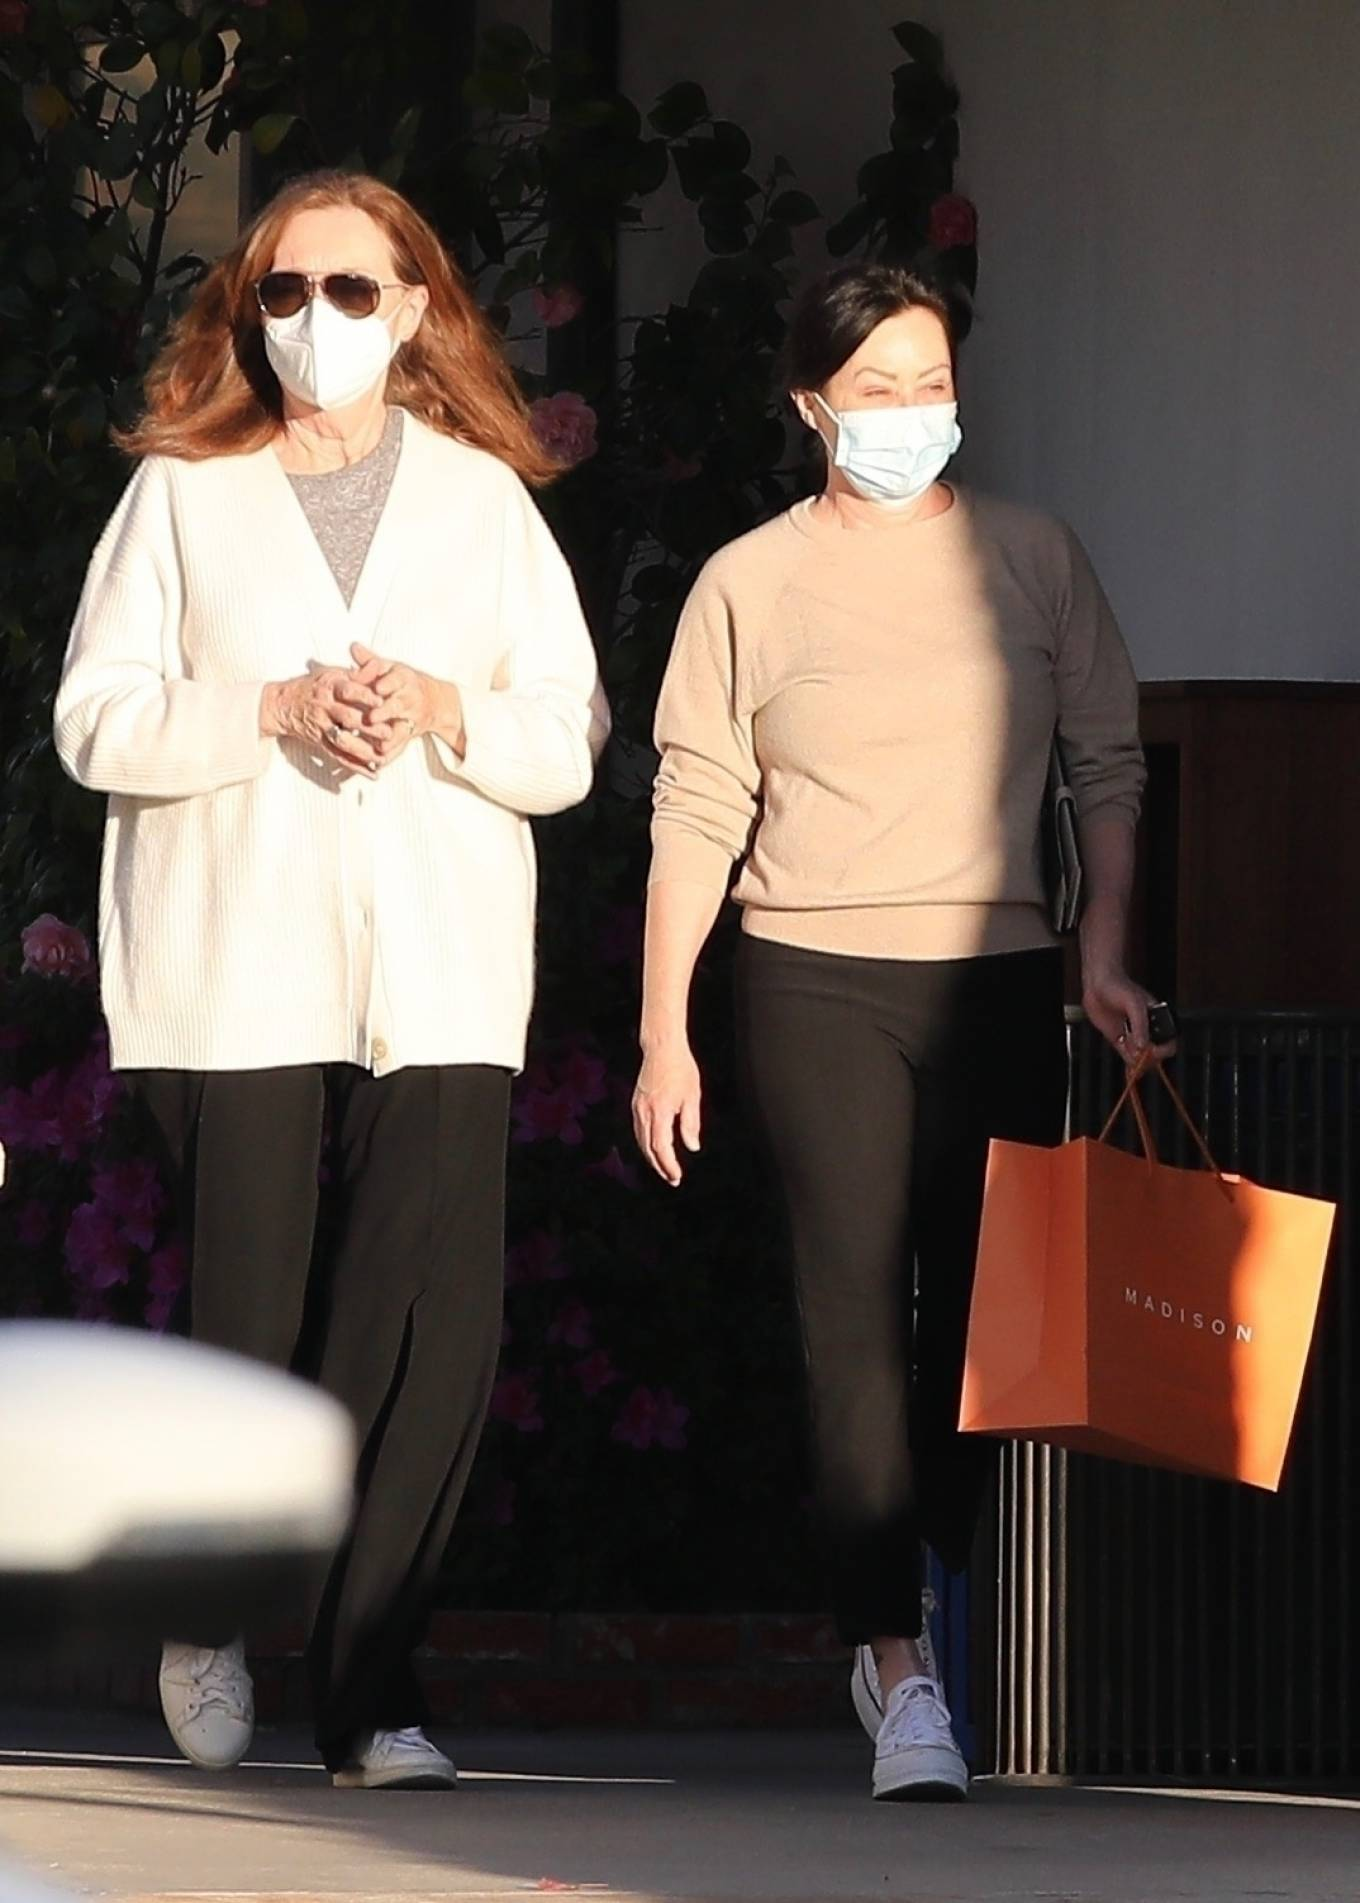 Shannen Doherty - With her mother Rosa Elizabeth shopping in Malibu